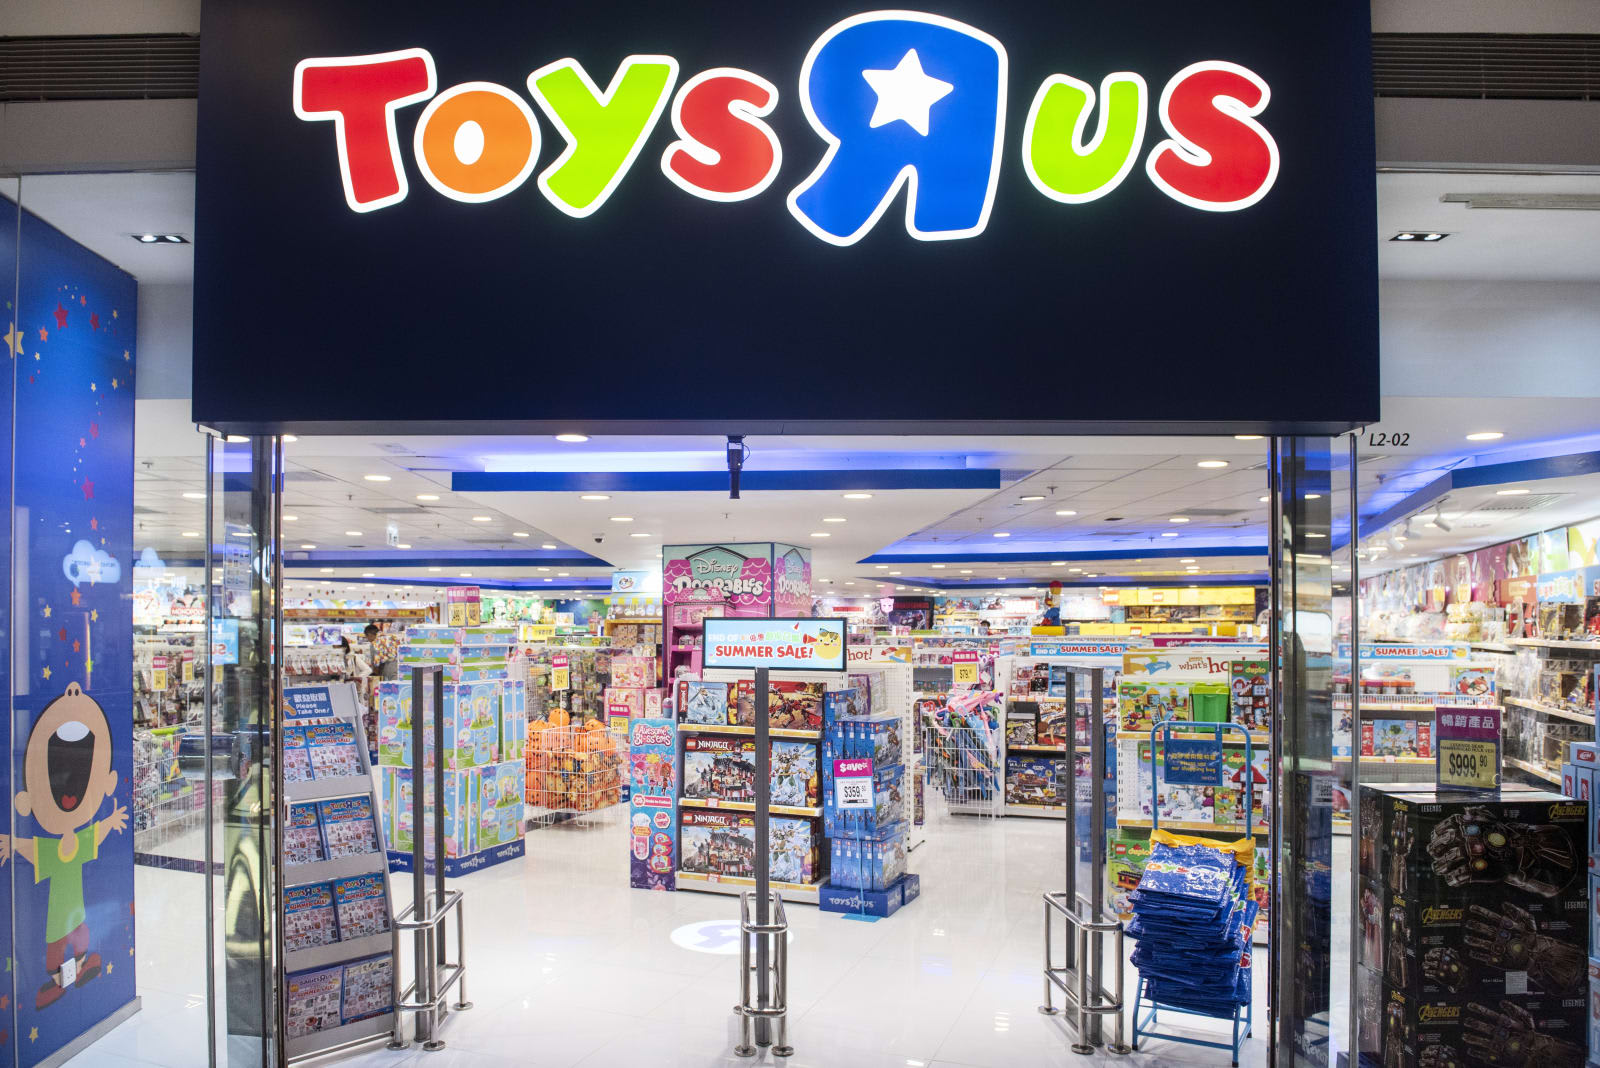 Toys 'R' Us debuts a new website, but you're really buying from Target